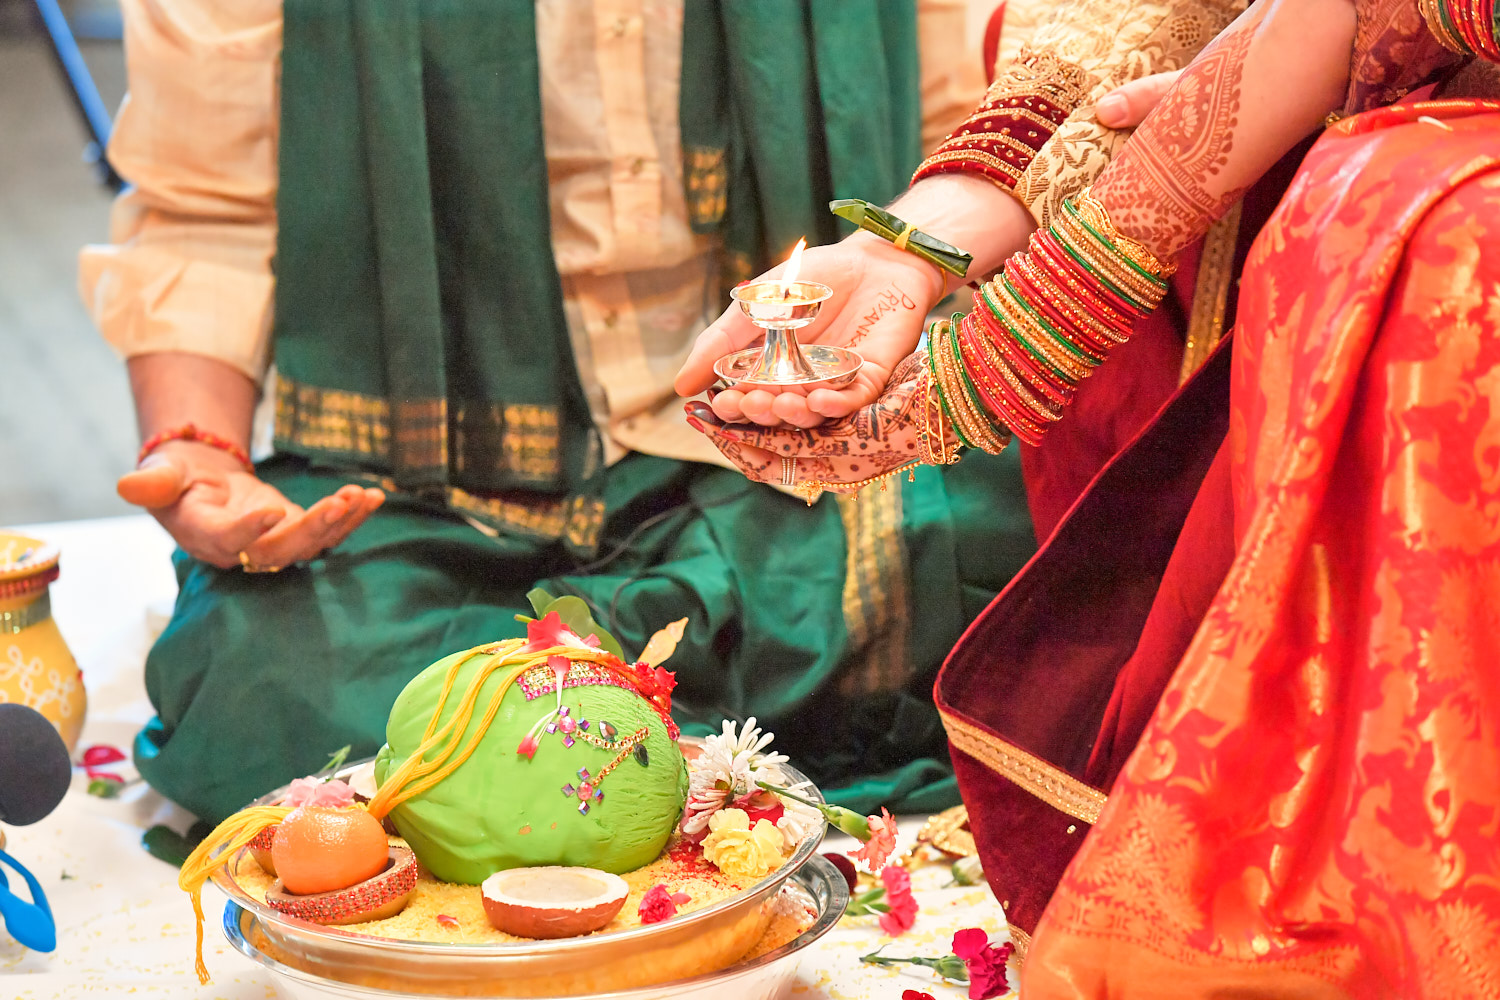 south-indian-wedding-ceremony-photography-by-afewgoodclicks-net-in-saratoga 179.jpg